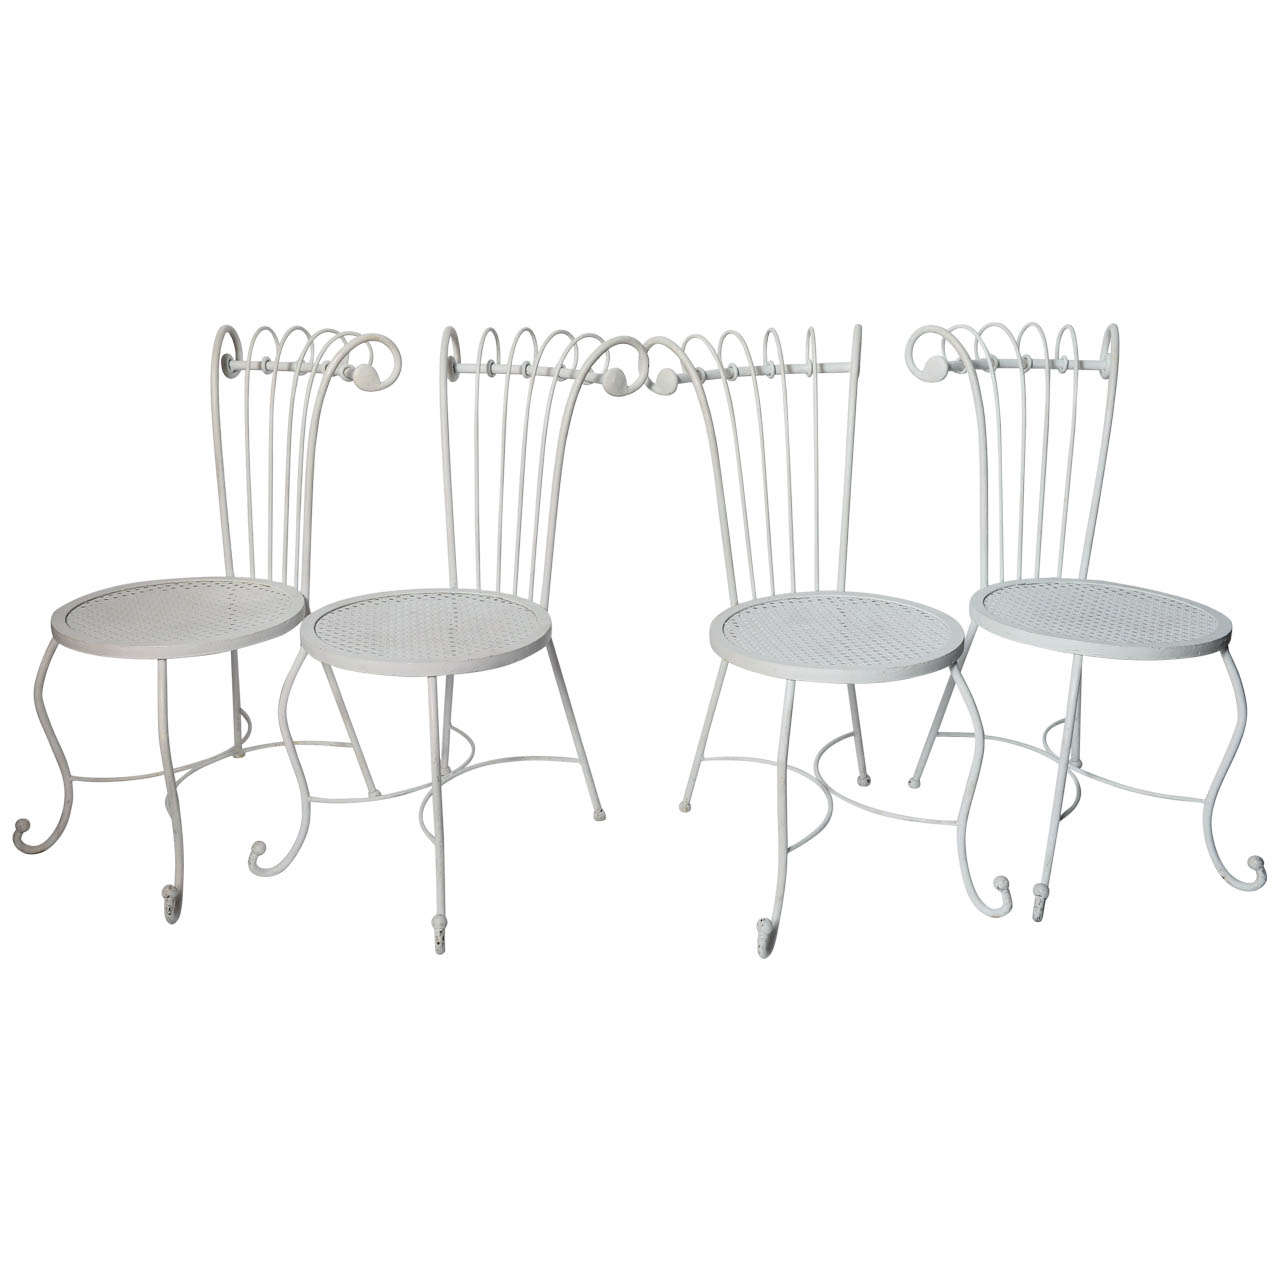 white wrought iron furniture. Set Of Four 1940\u0027s Hollywood Regency White Wrought Iron Chairs For Sale Furniture I